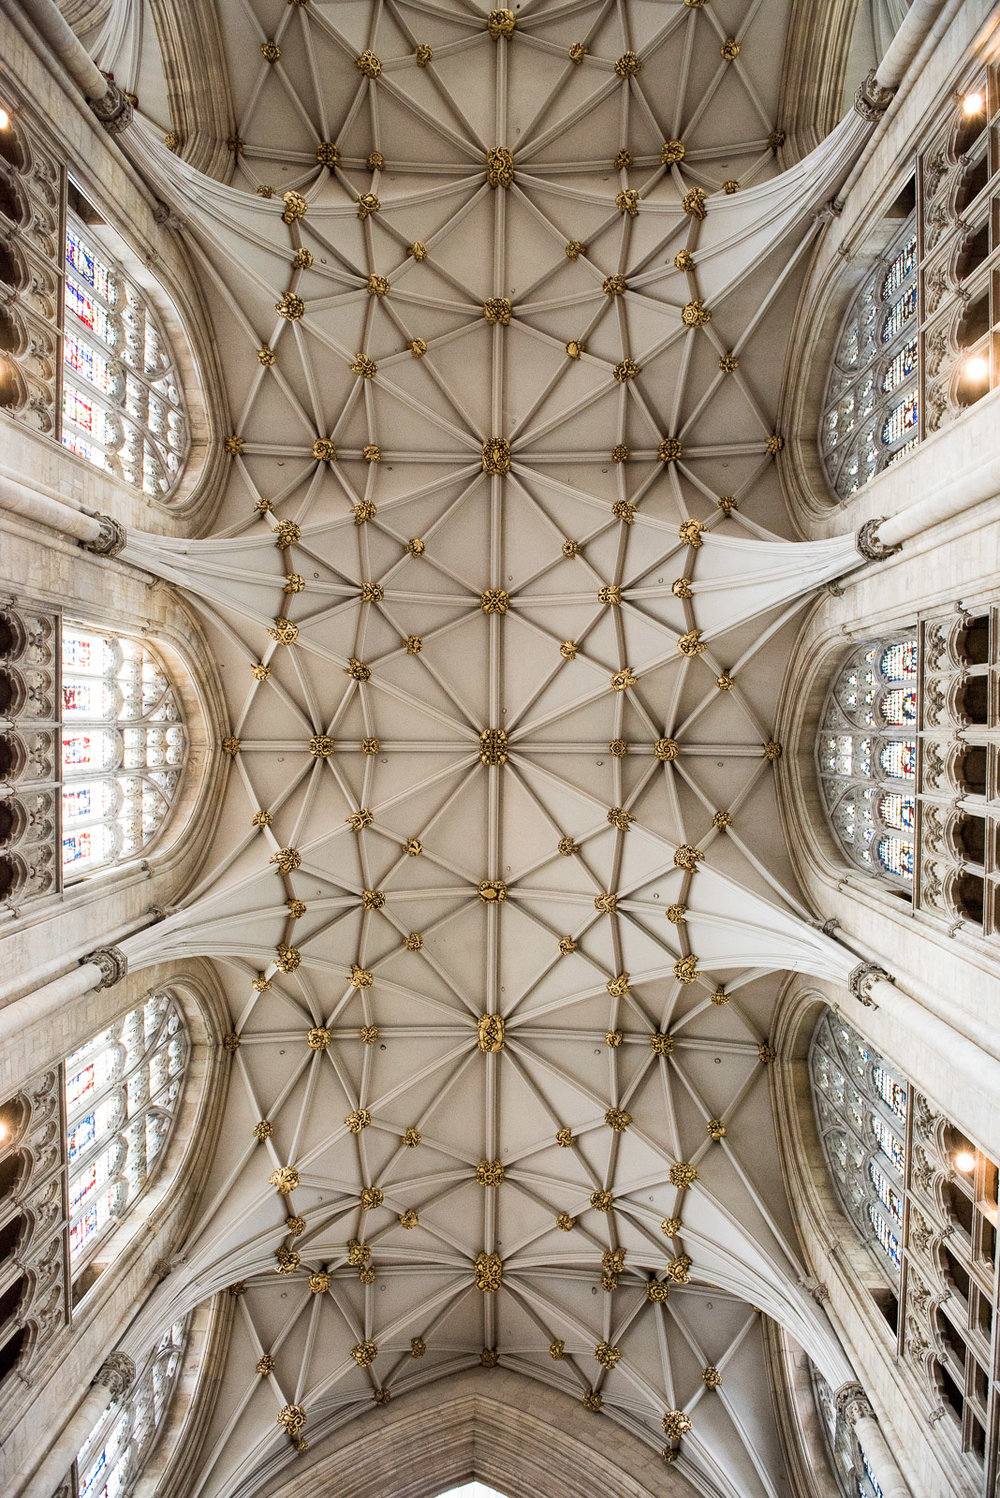 Architecture inside the York Minster. © Jessica Grace Photography